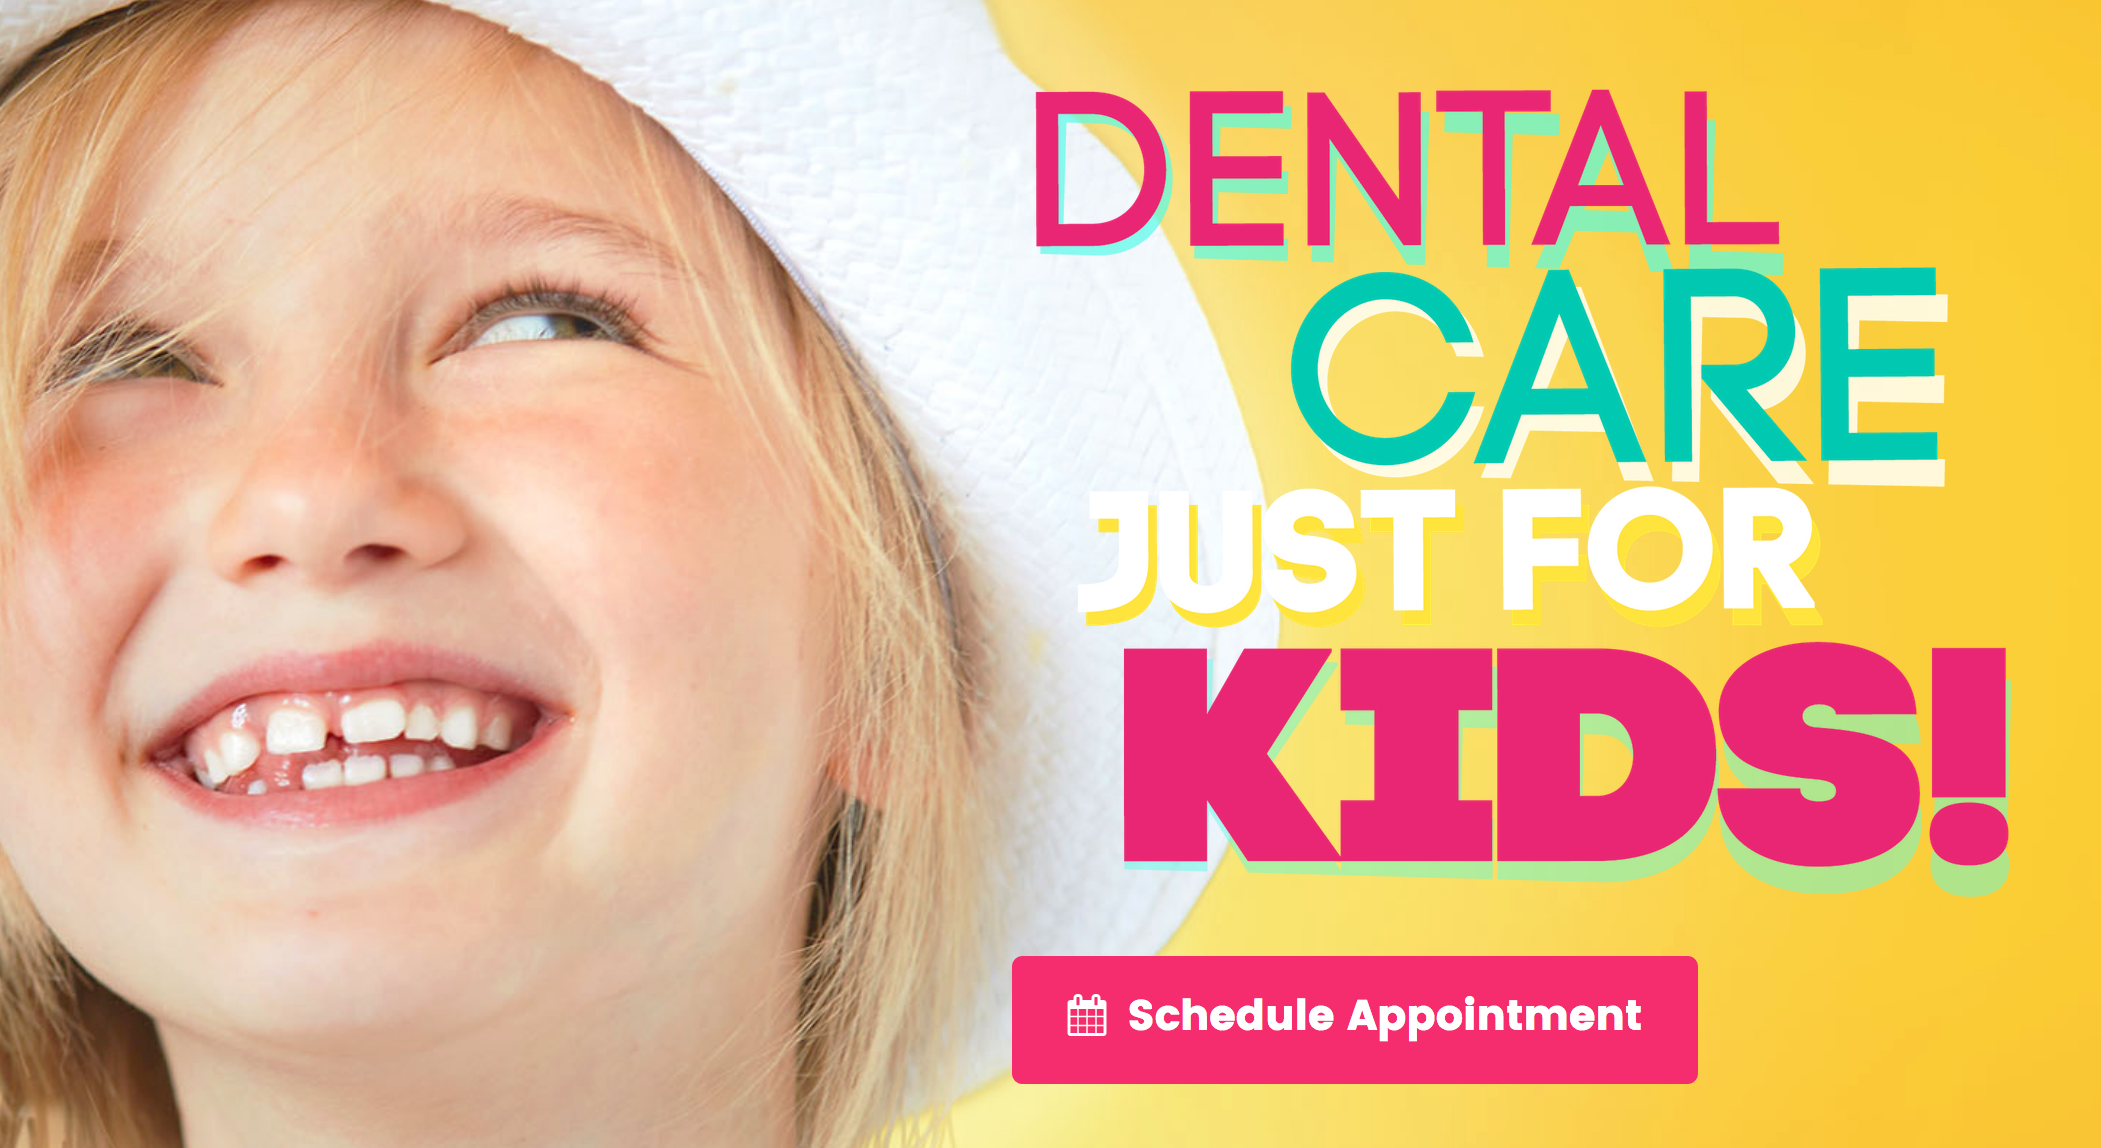 Dental Care Just for Kids!